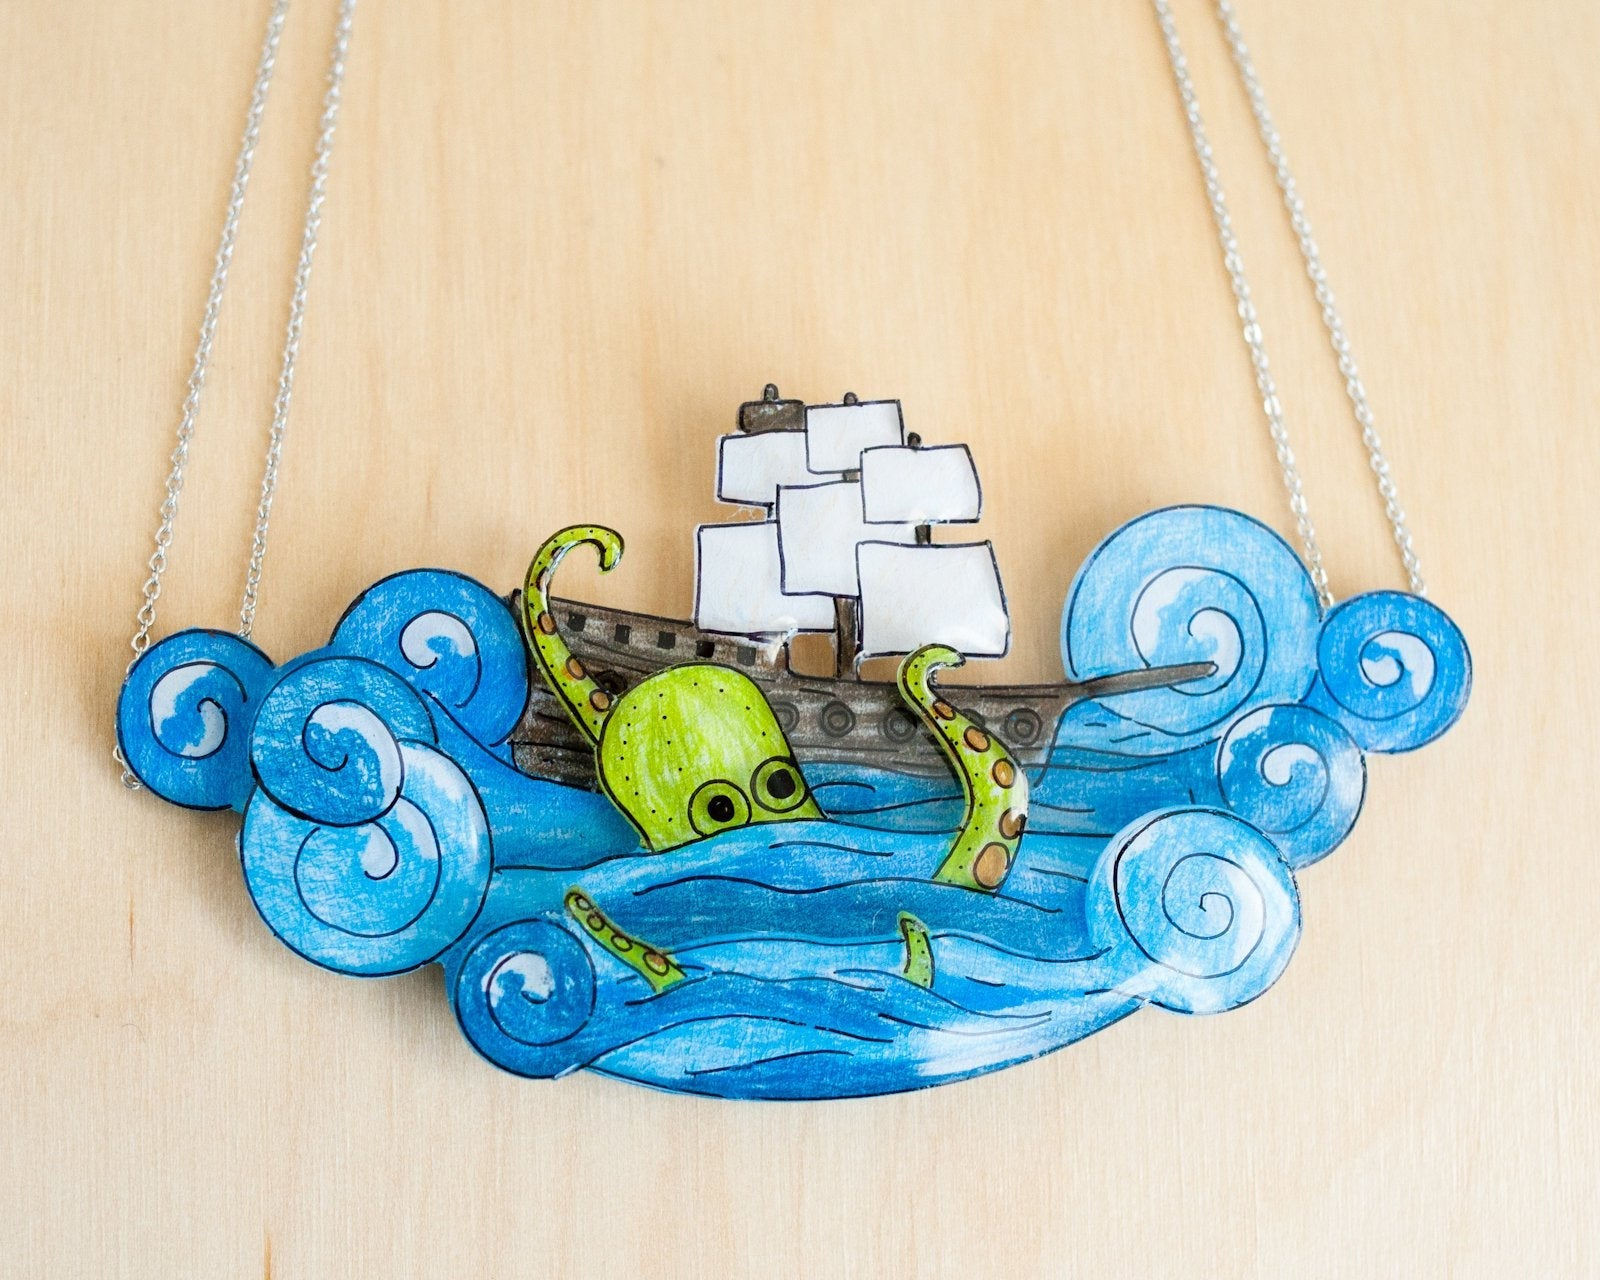 Kraken Pirate Ship Necklace